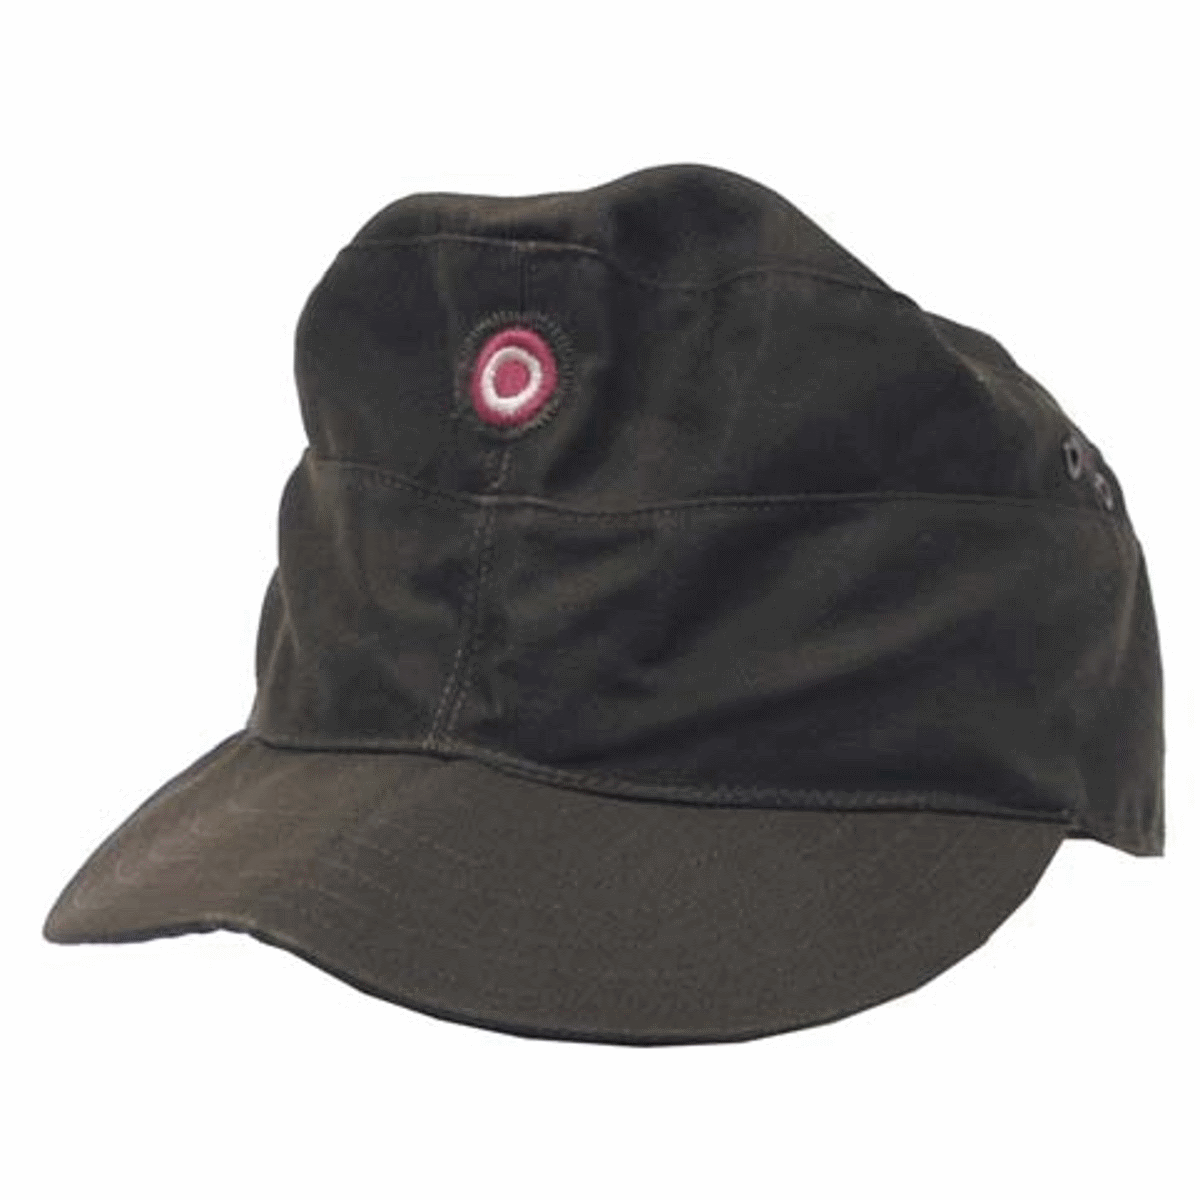 austrian army surplus field cap